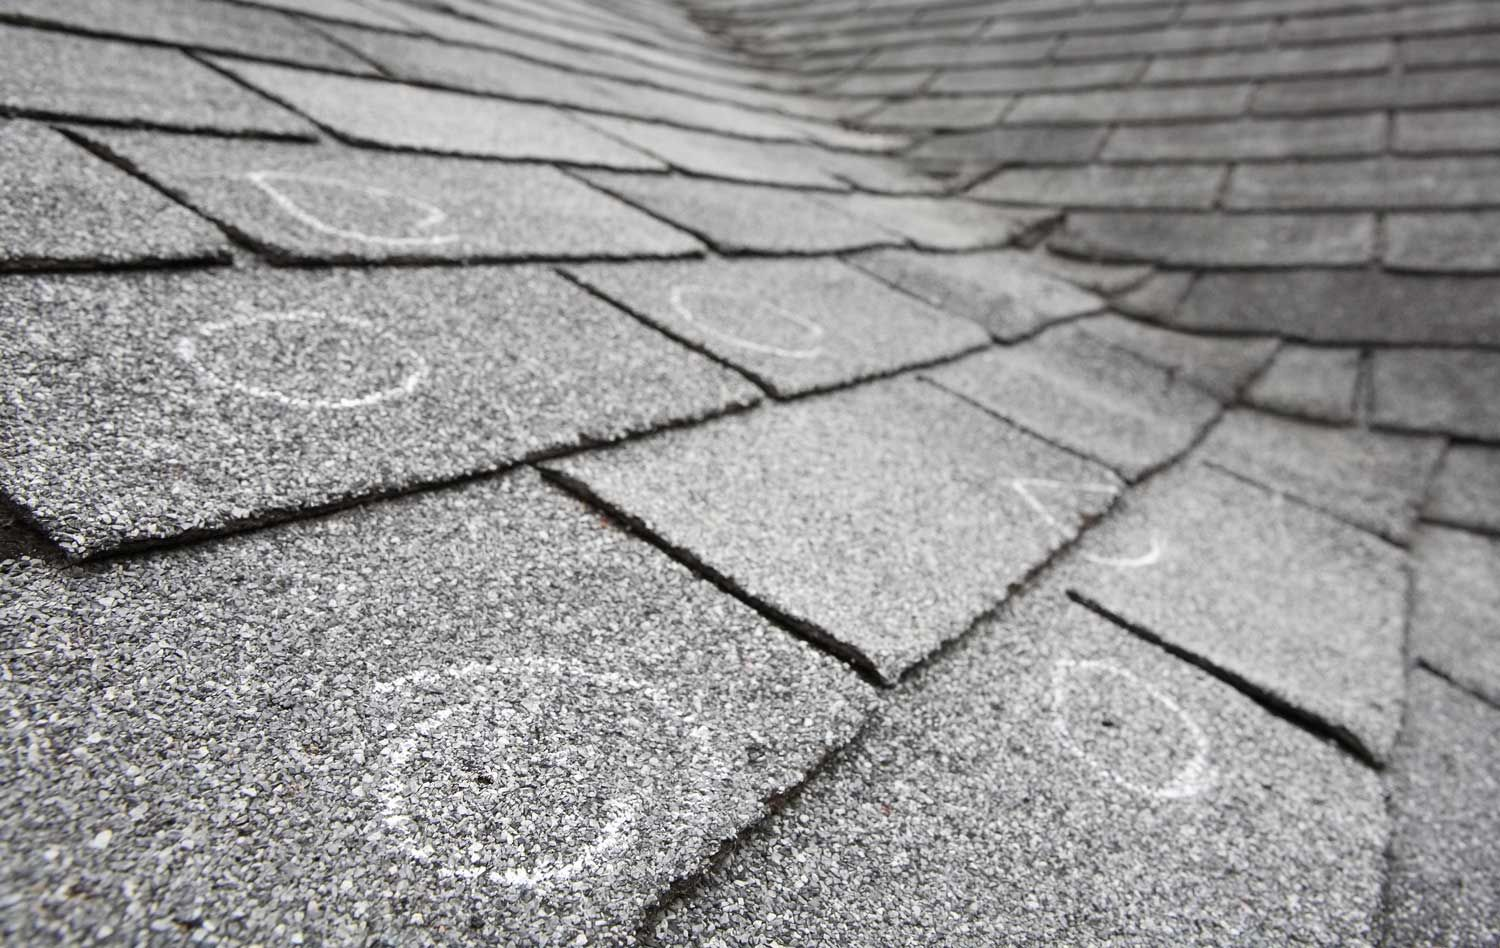 Cost To Repair A Roof In 2020 Average Prices Inch Calculator Roof Damage Roof Repair Roof Inspection